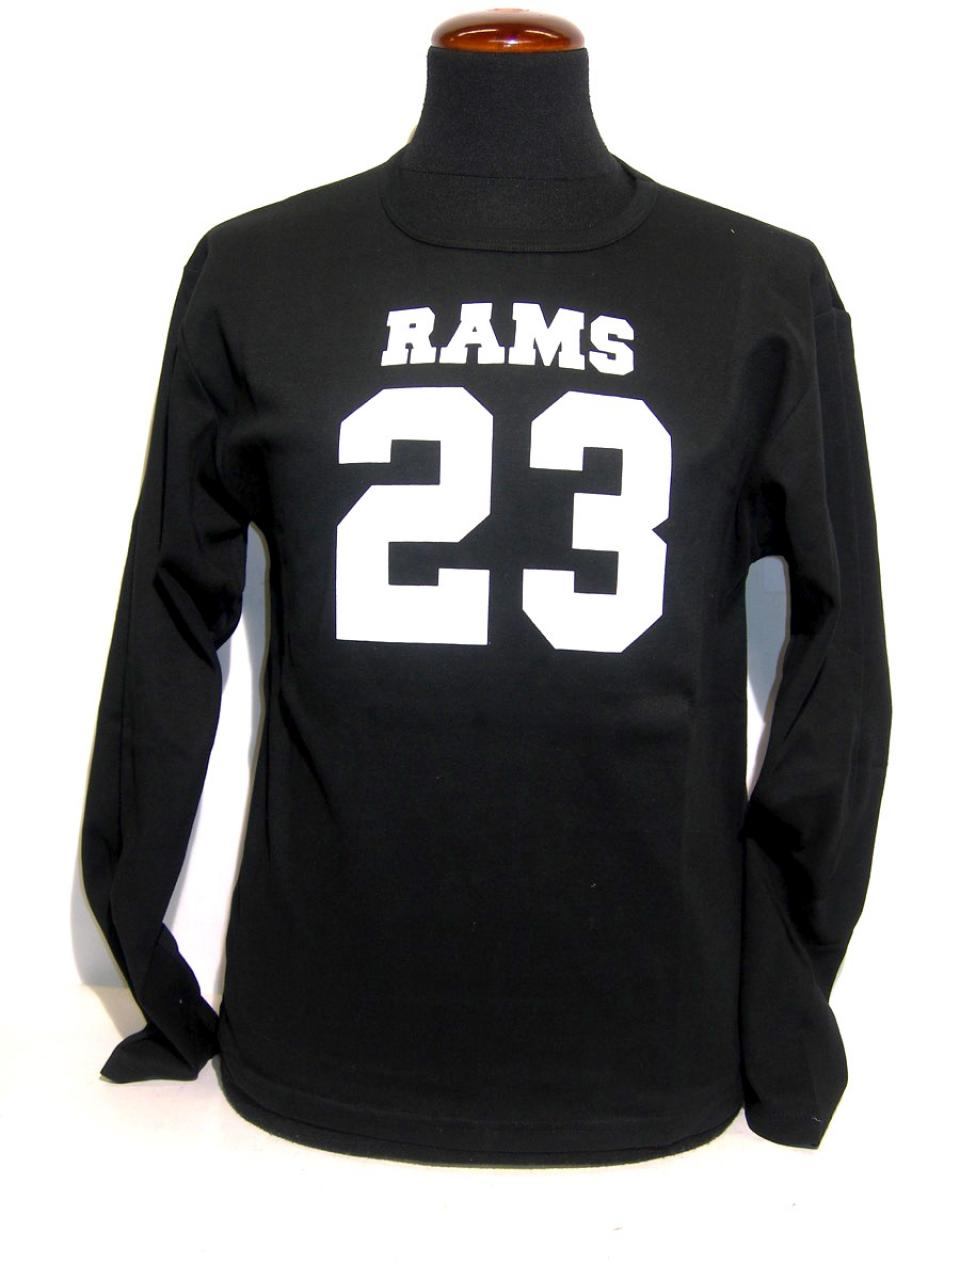 rams rams 23 2 1 9507 2 1 maglietta t shirt telodoio it